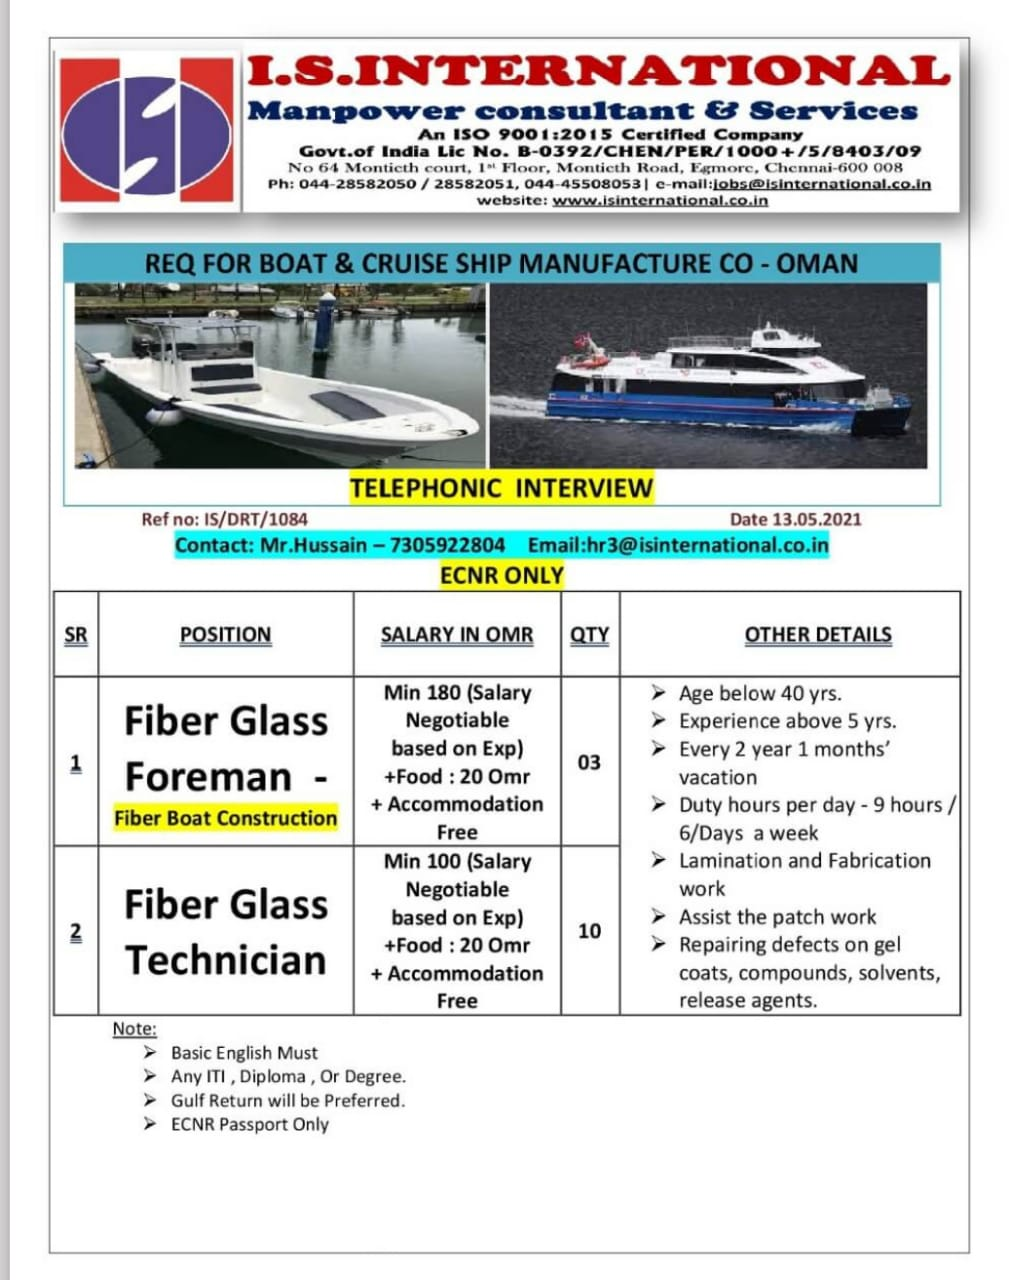 REQUIREMENT BOAT AND CRUISE SHIP MANUFACTURING COMPANY IN OMAN